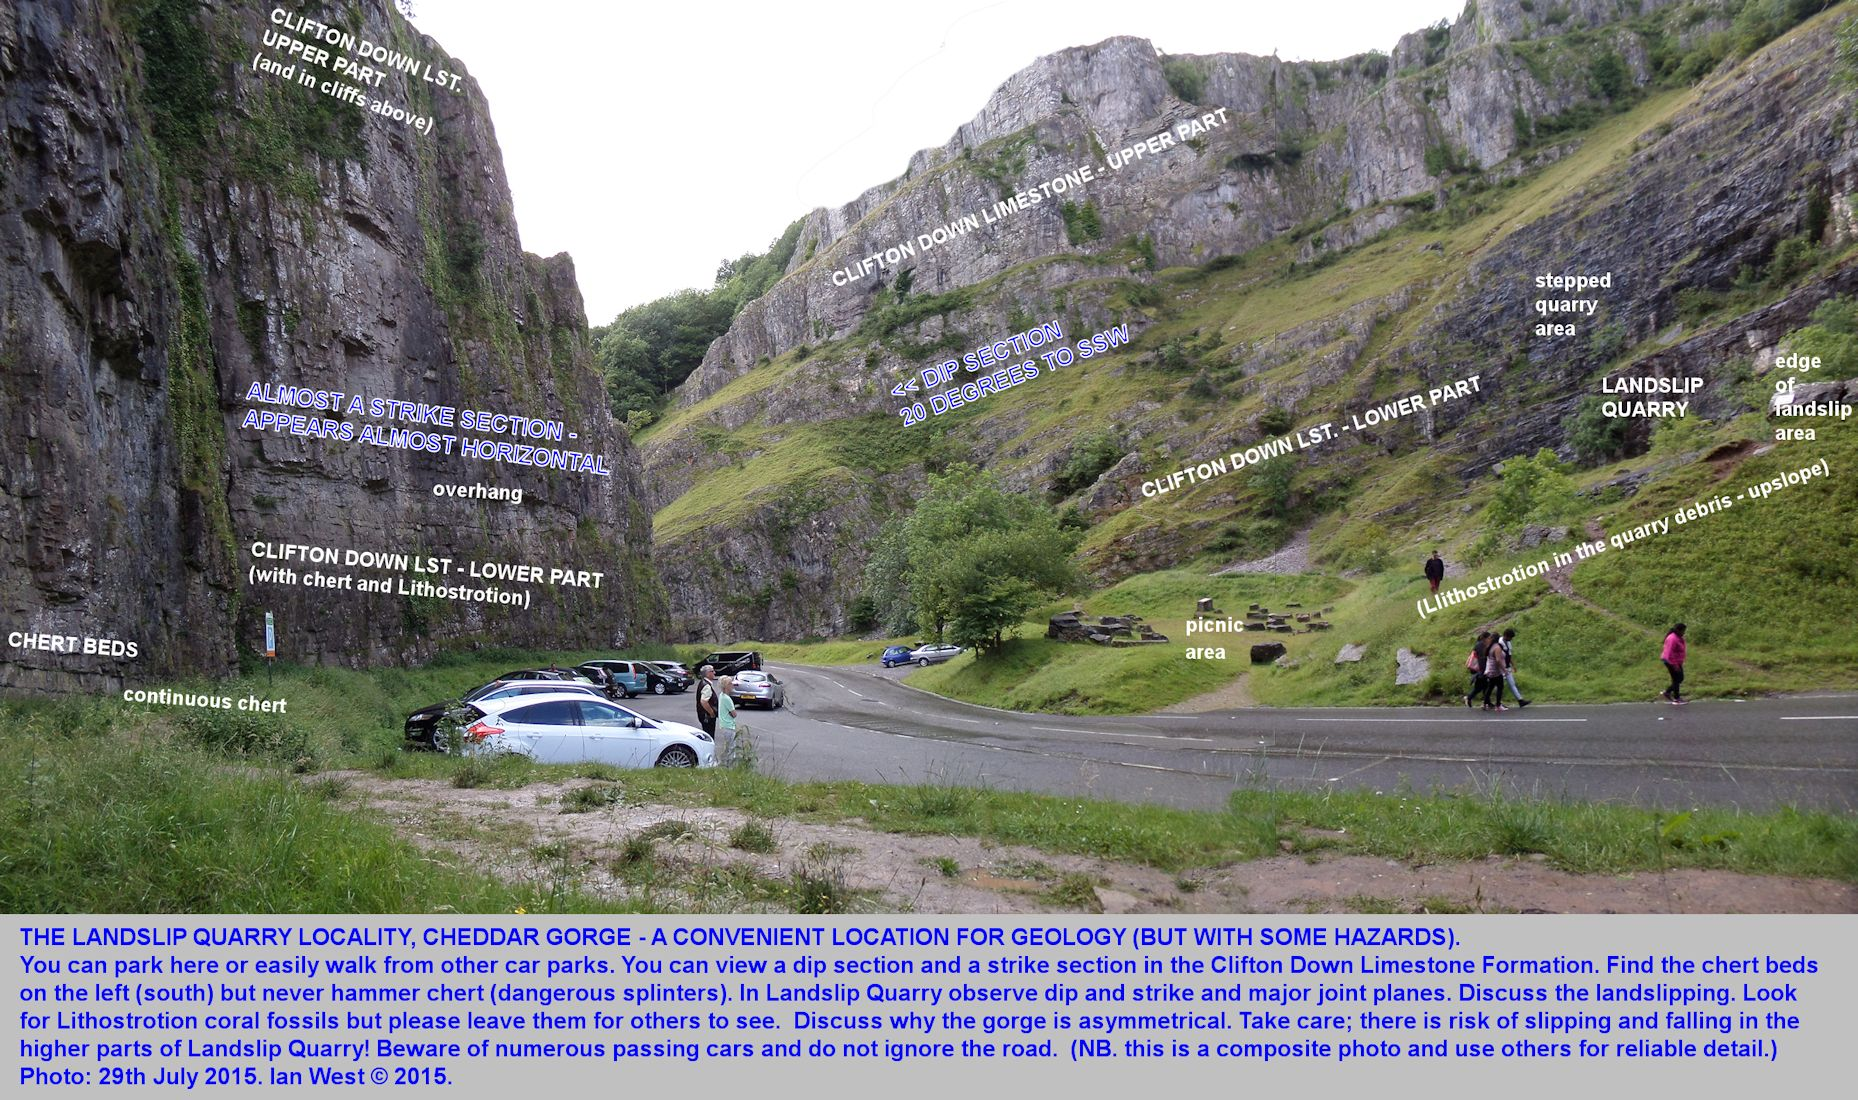 A general, labelled, introductory view of the Landslip Quarry area, showing both sides of the road, Cheddar Gorge, Mendip Hills, Somerset